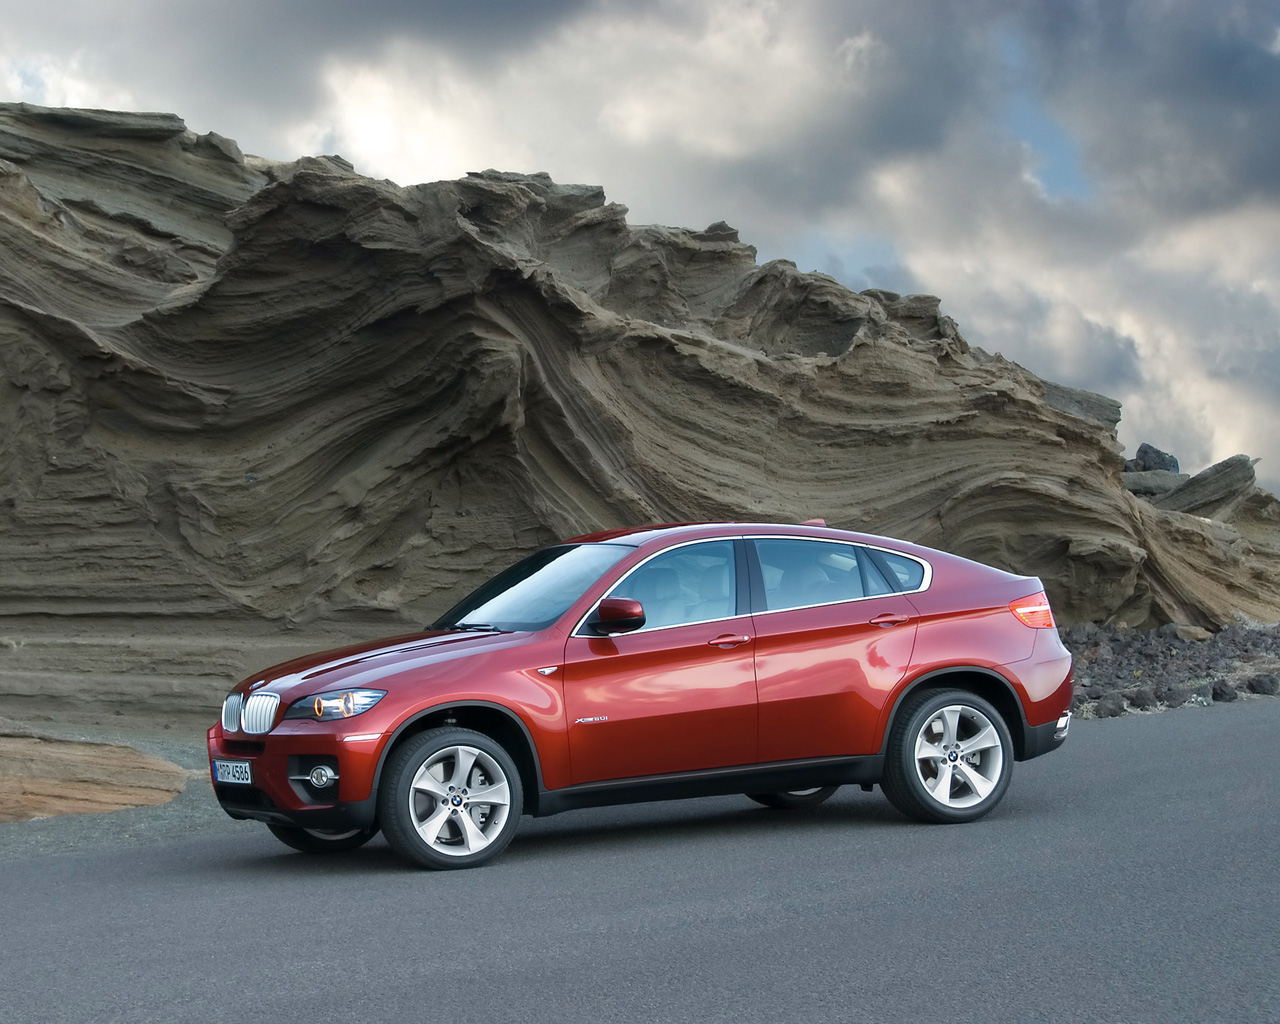 BMW X6 X-drive 50i. View Download Wallpaper. 1280x1024. Comments